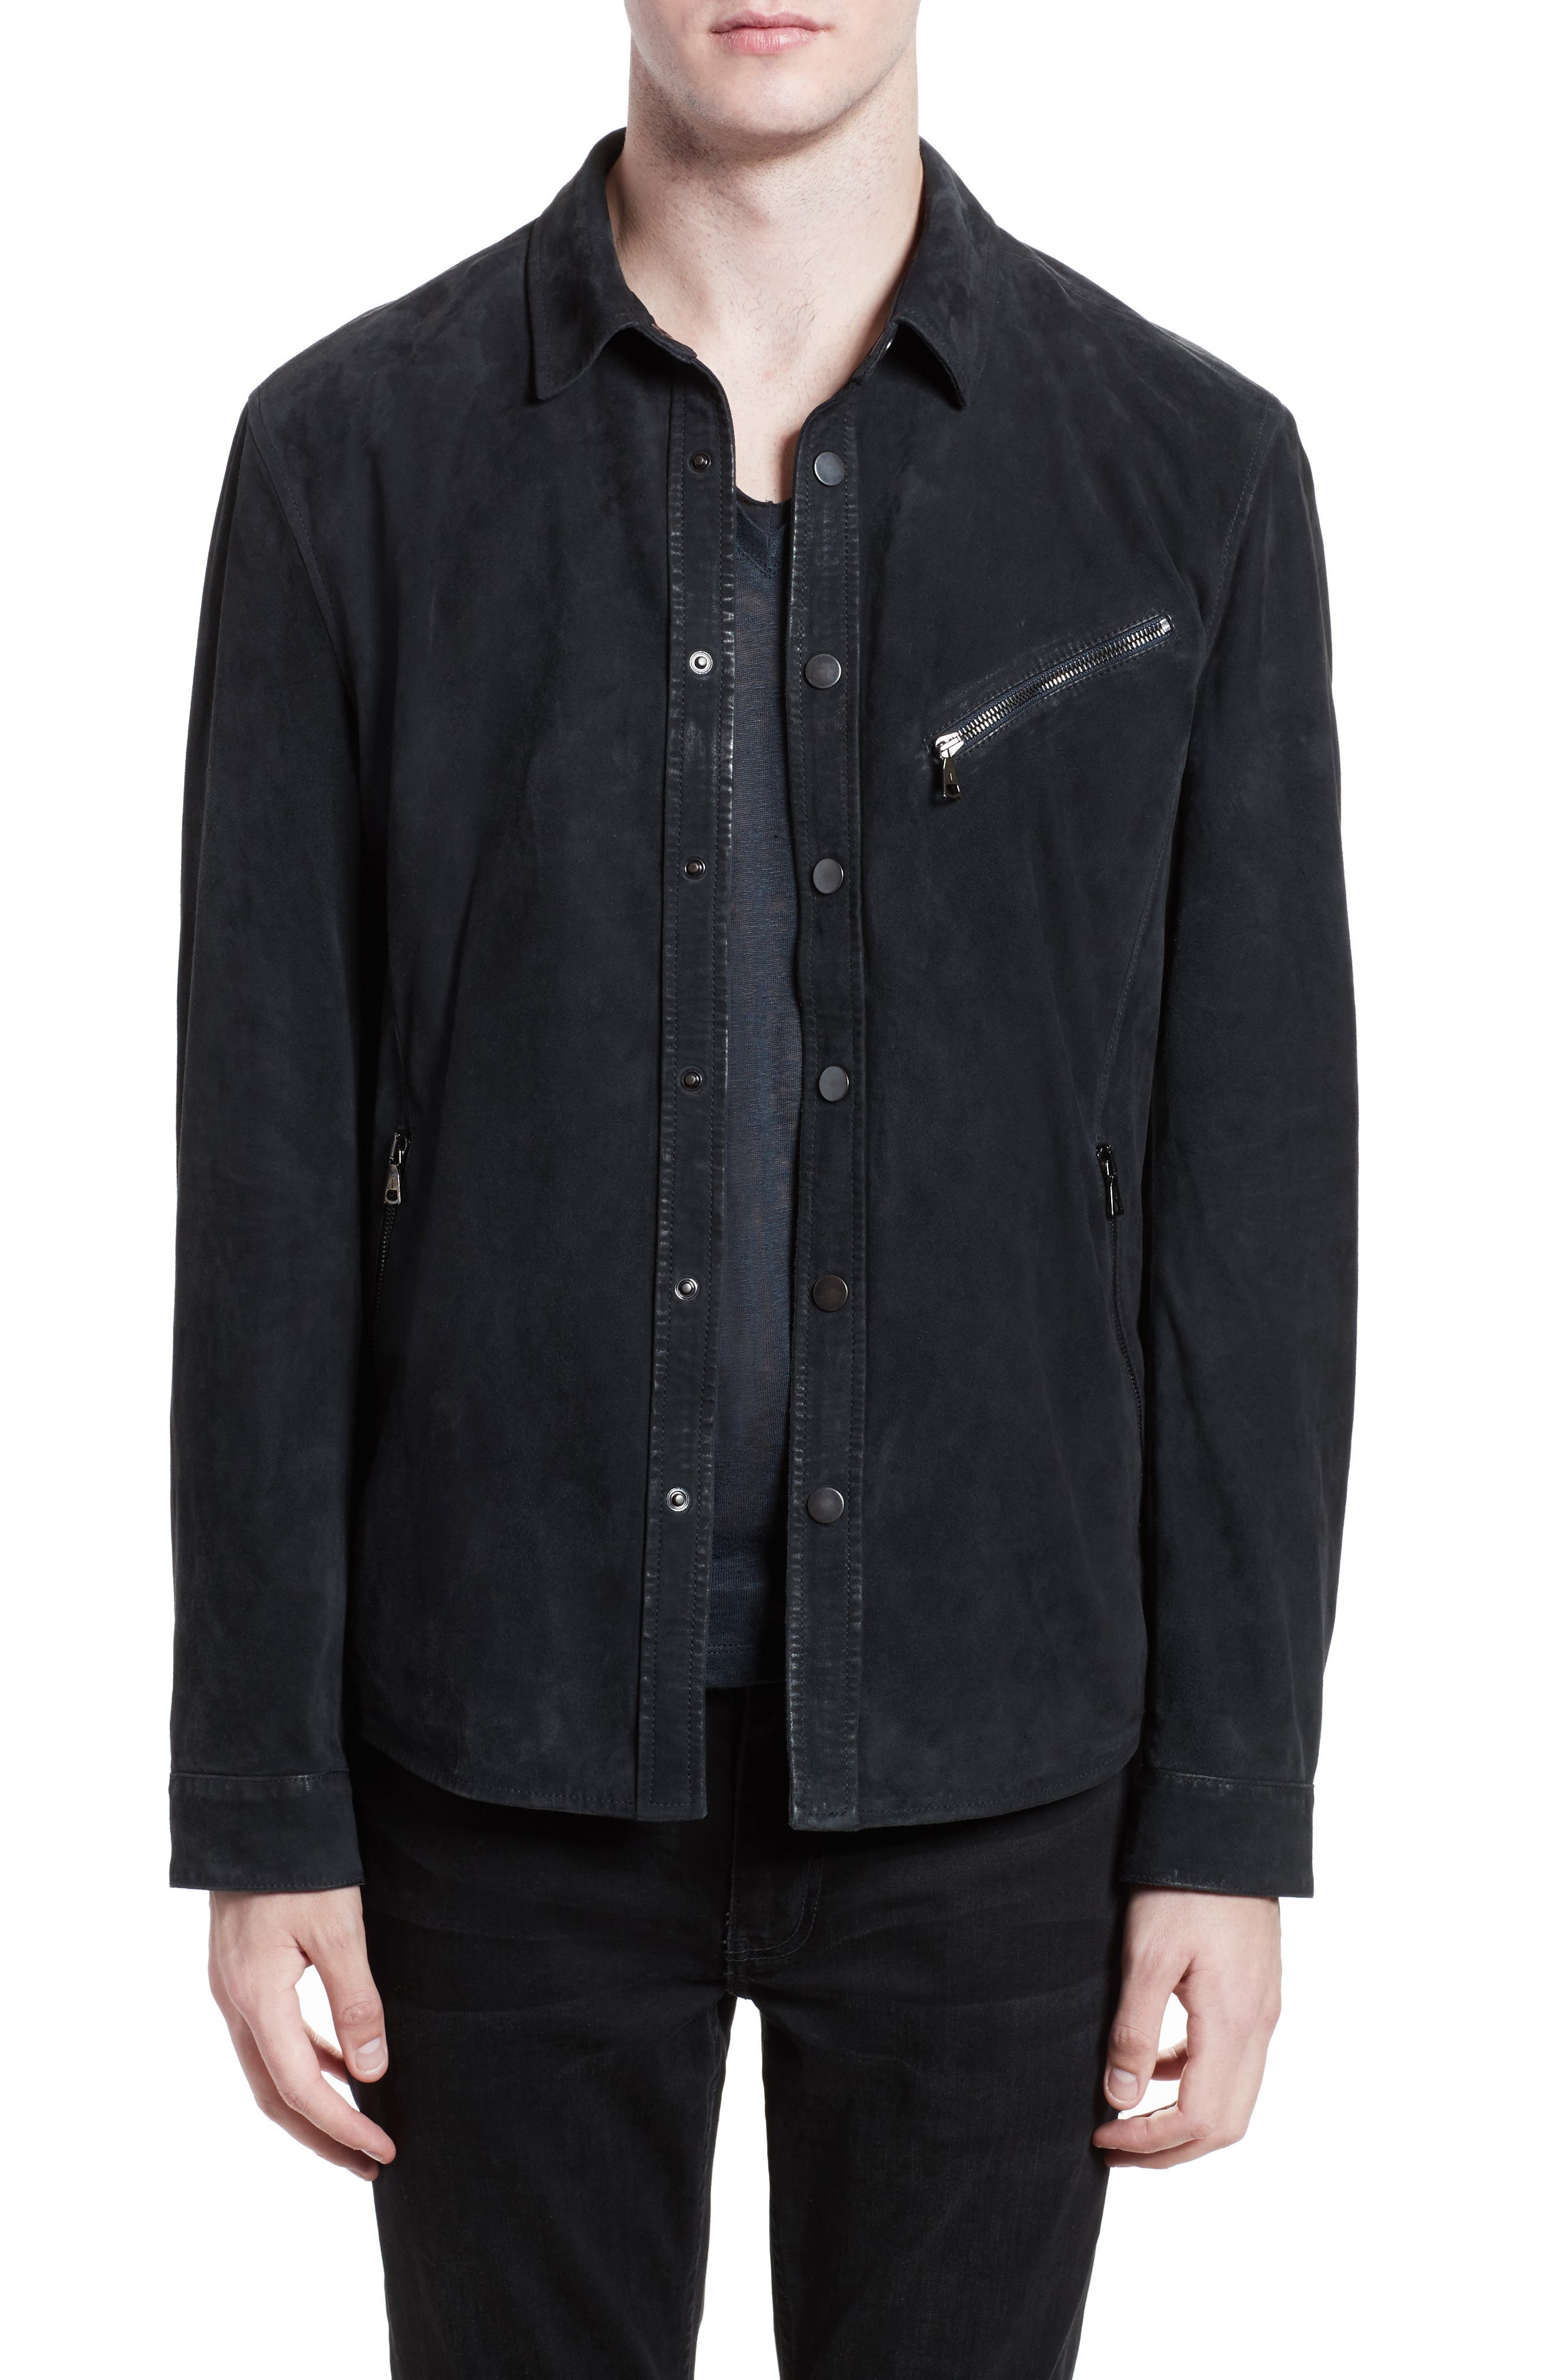 JOHN VARVATOS COLLECTION John Varvatos Suede Shirt Jacket